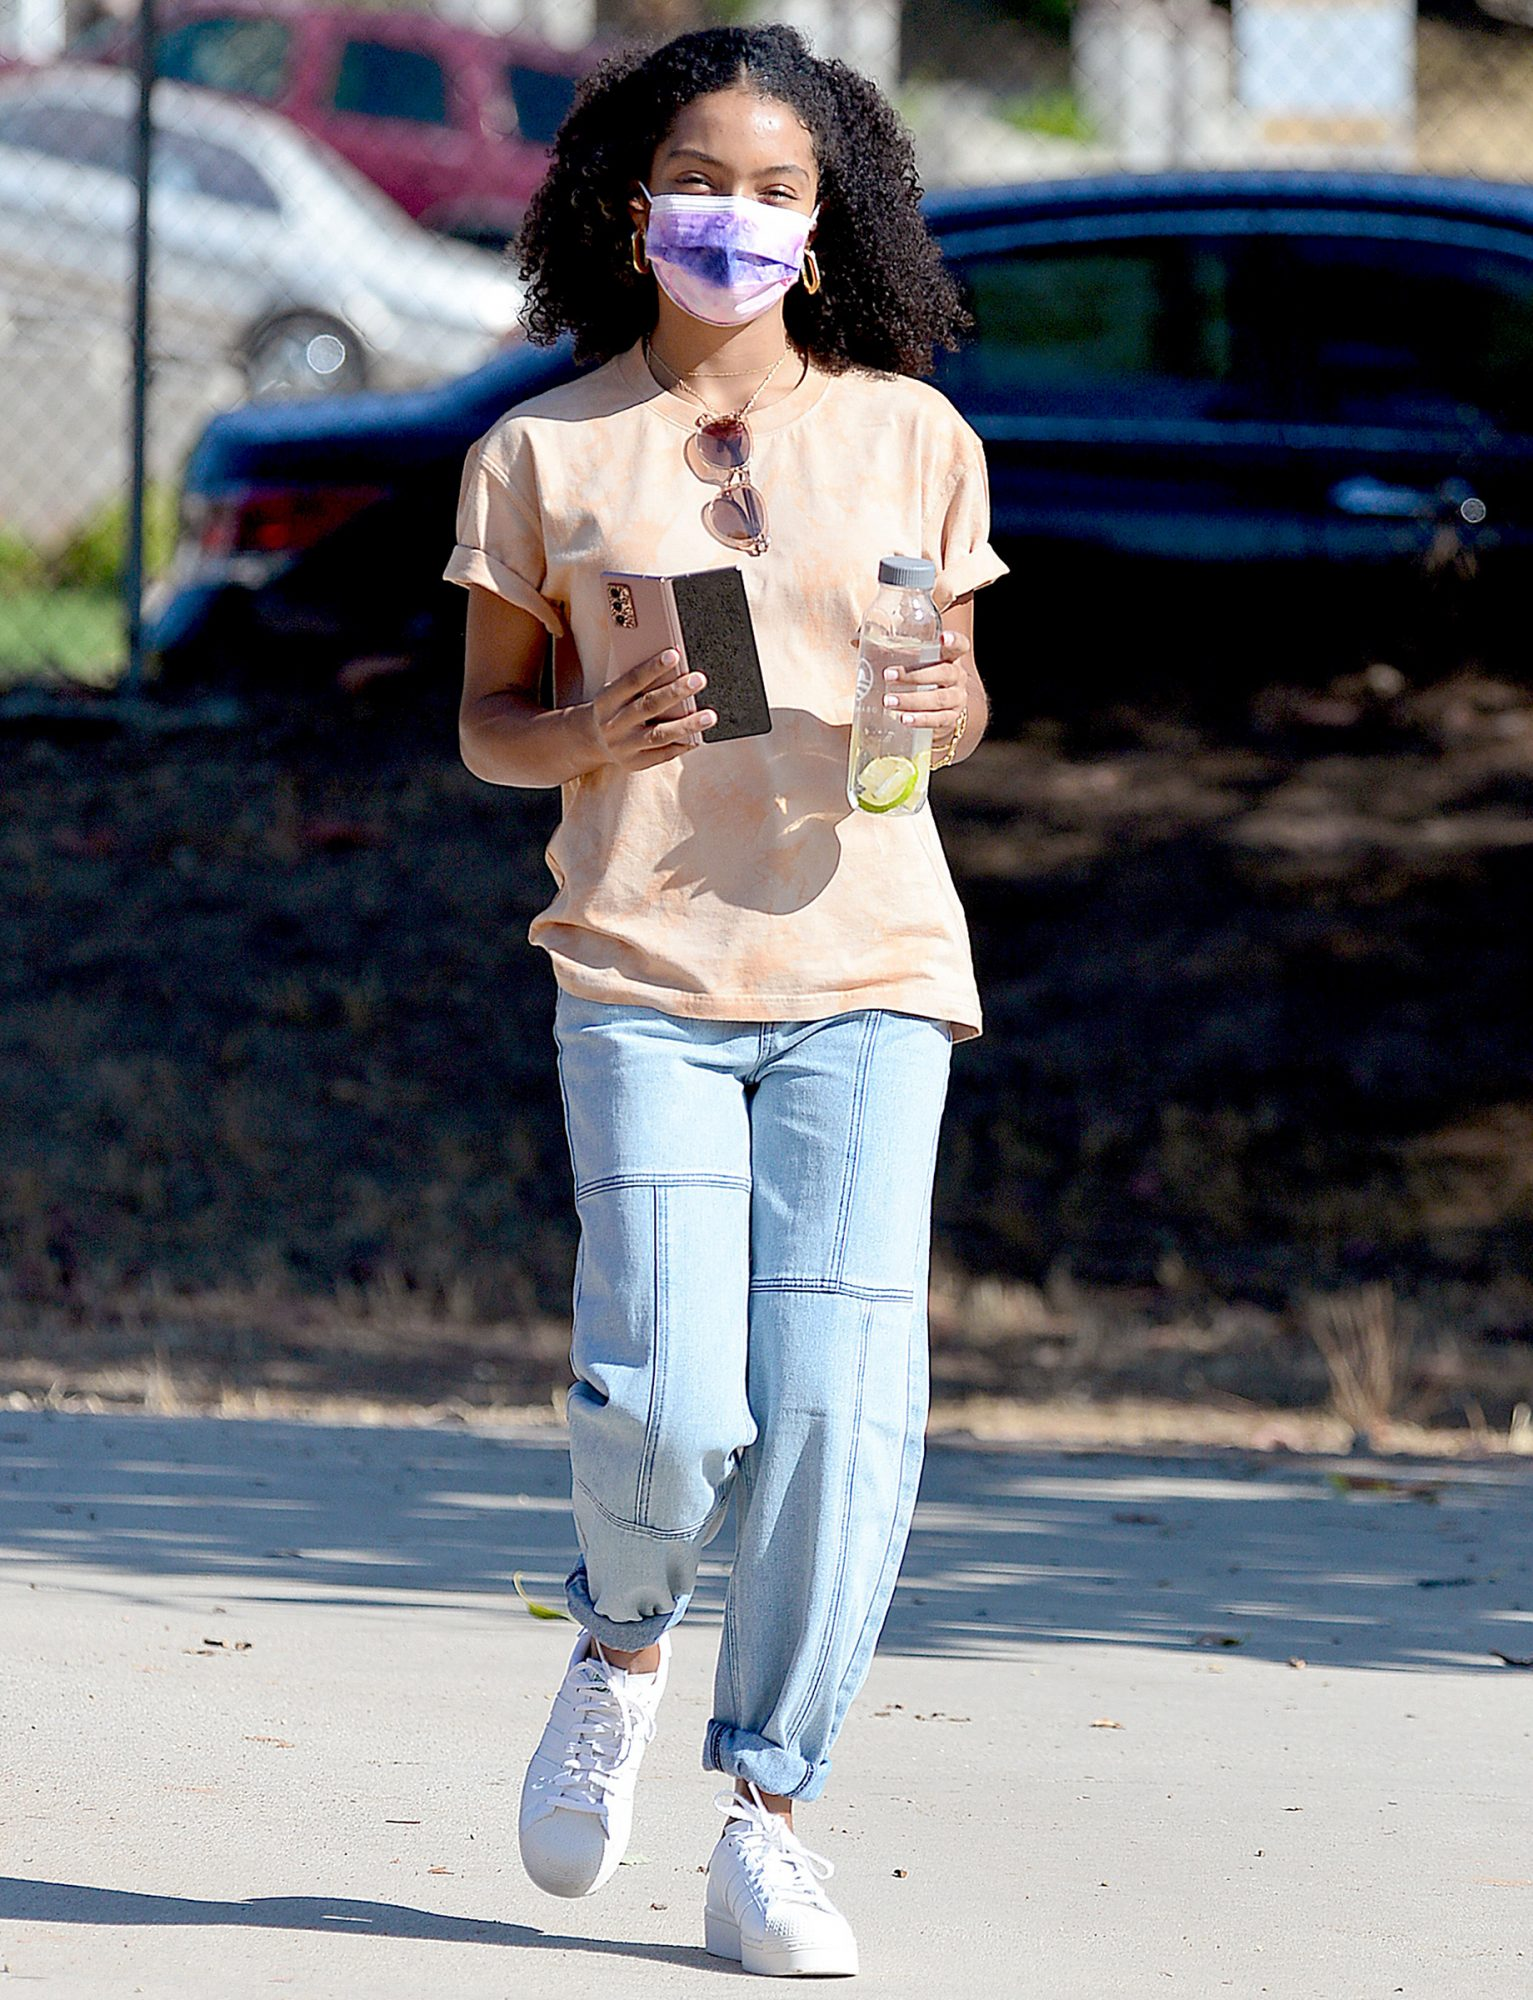 Yara Shahidi steps out wearing a PacSun shirt and denim while enjoying a day in the park with her brother